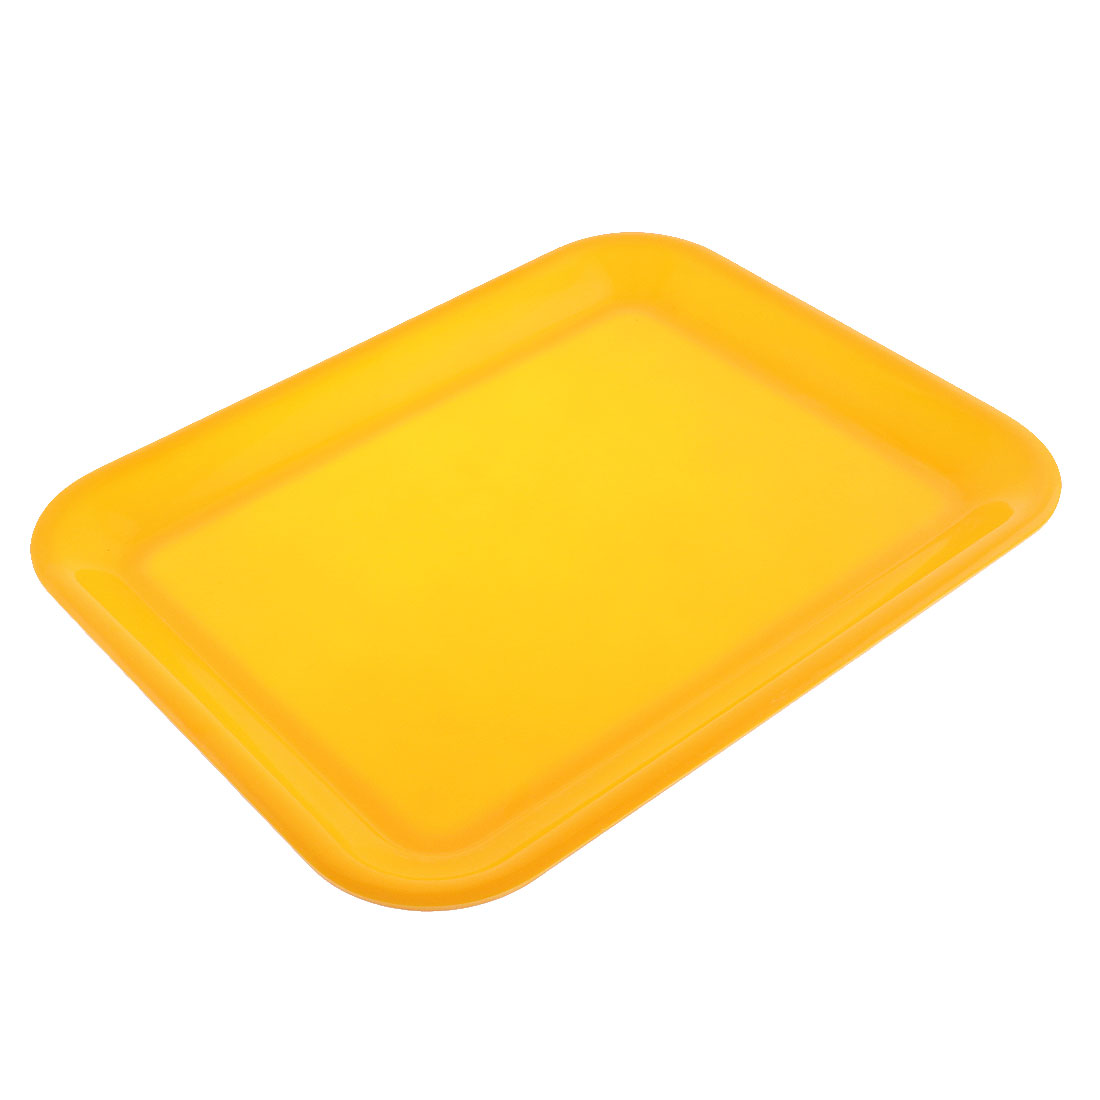 "Plastic Rectangle Shaped Food Pizzeria Dinner Serving Tray Yellow 13"" Length"